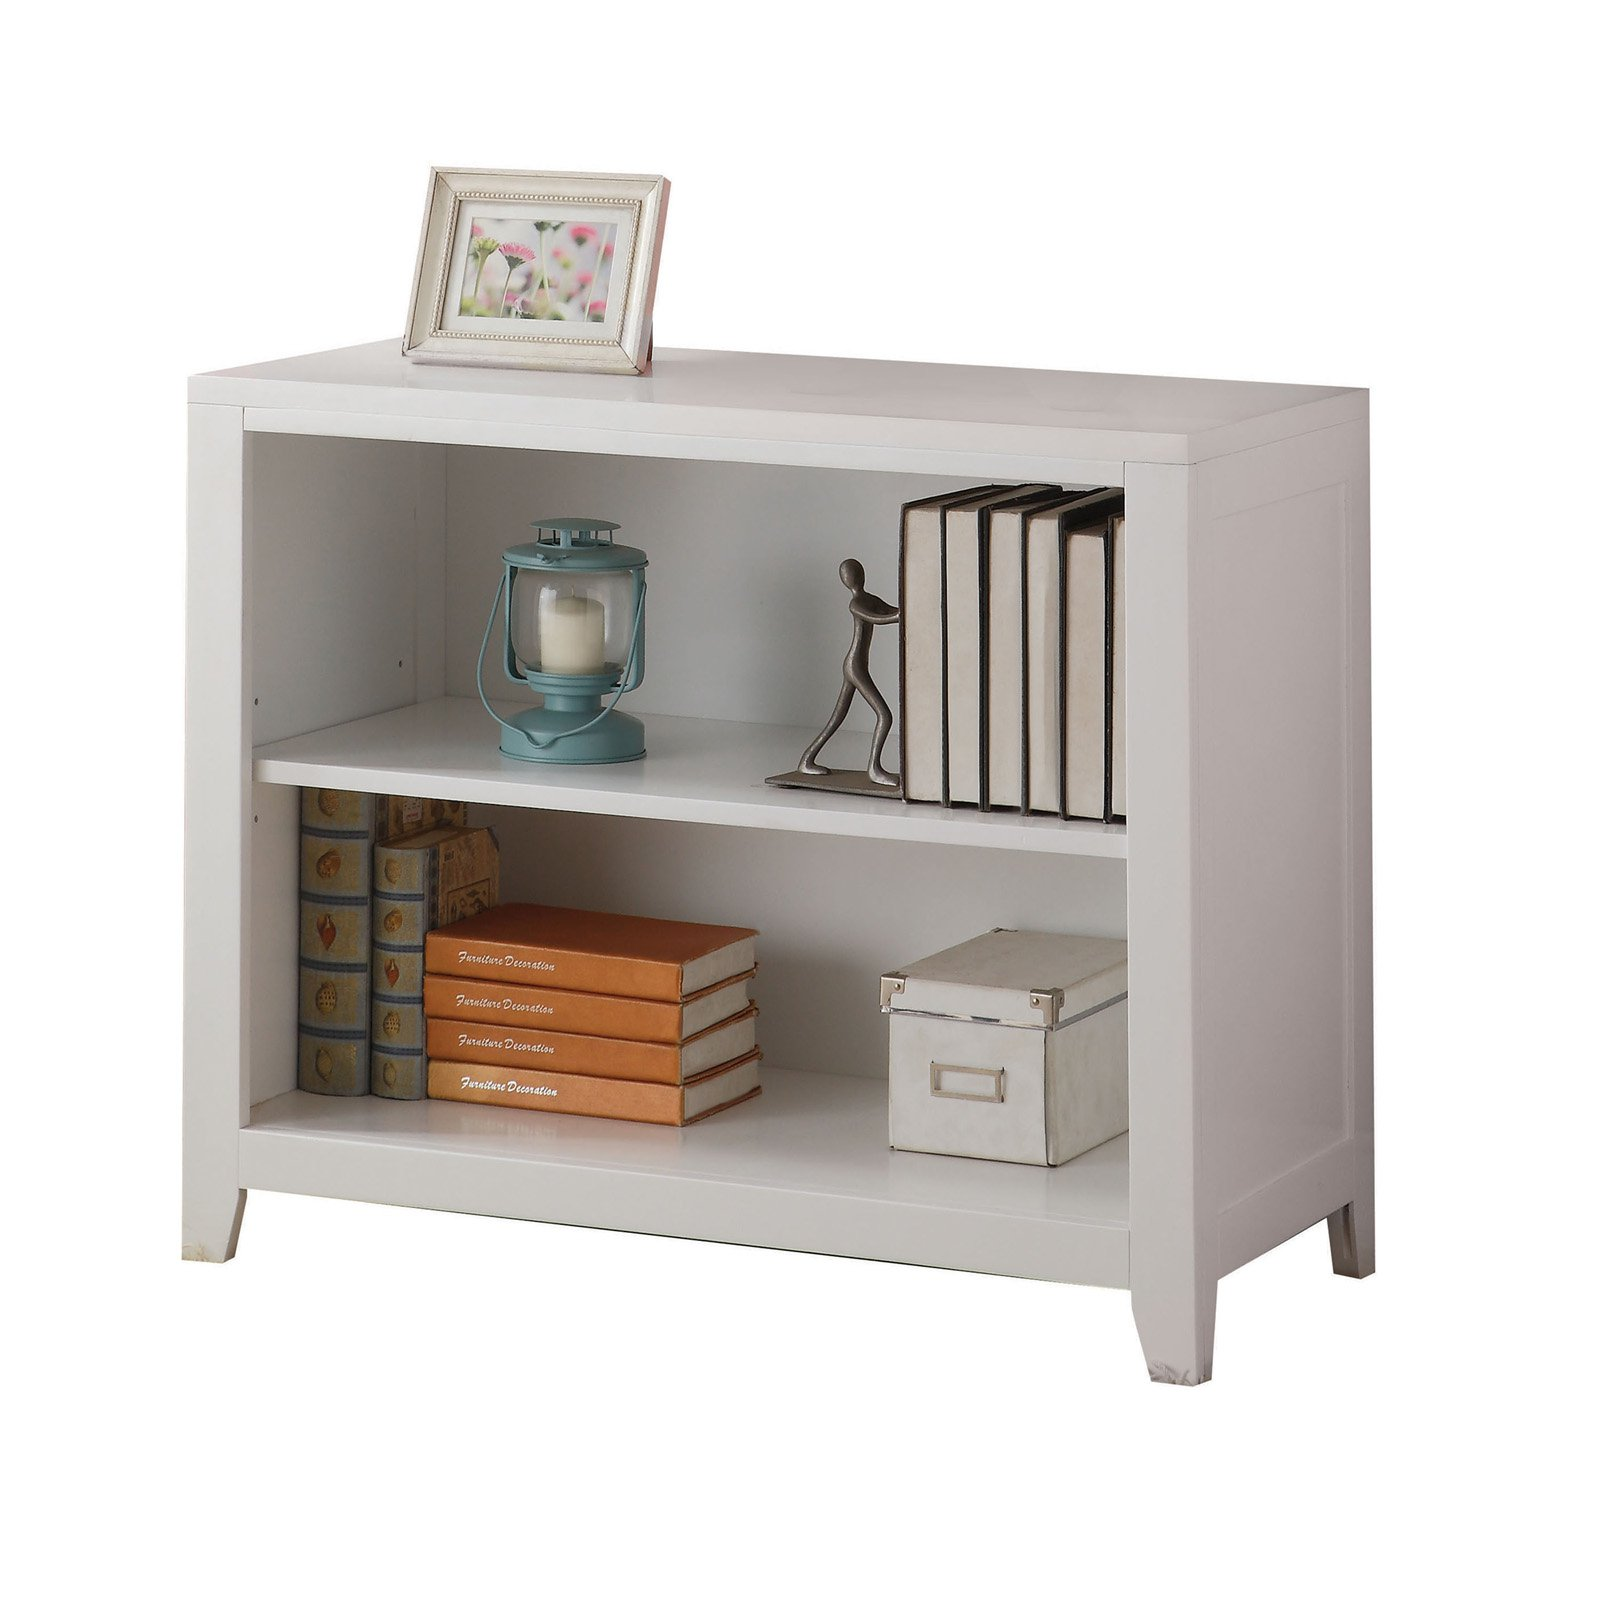 Acme Lacey Bookcase, White